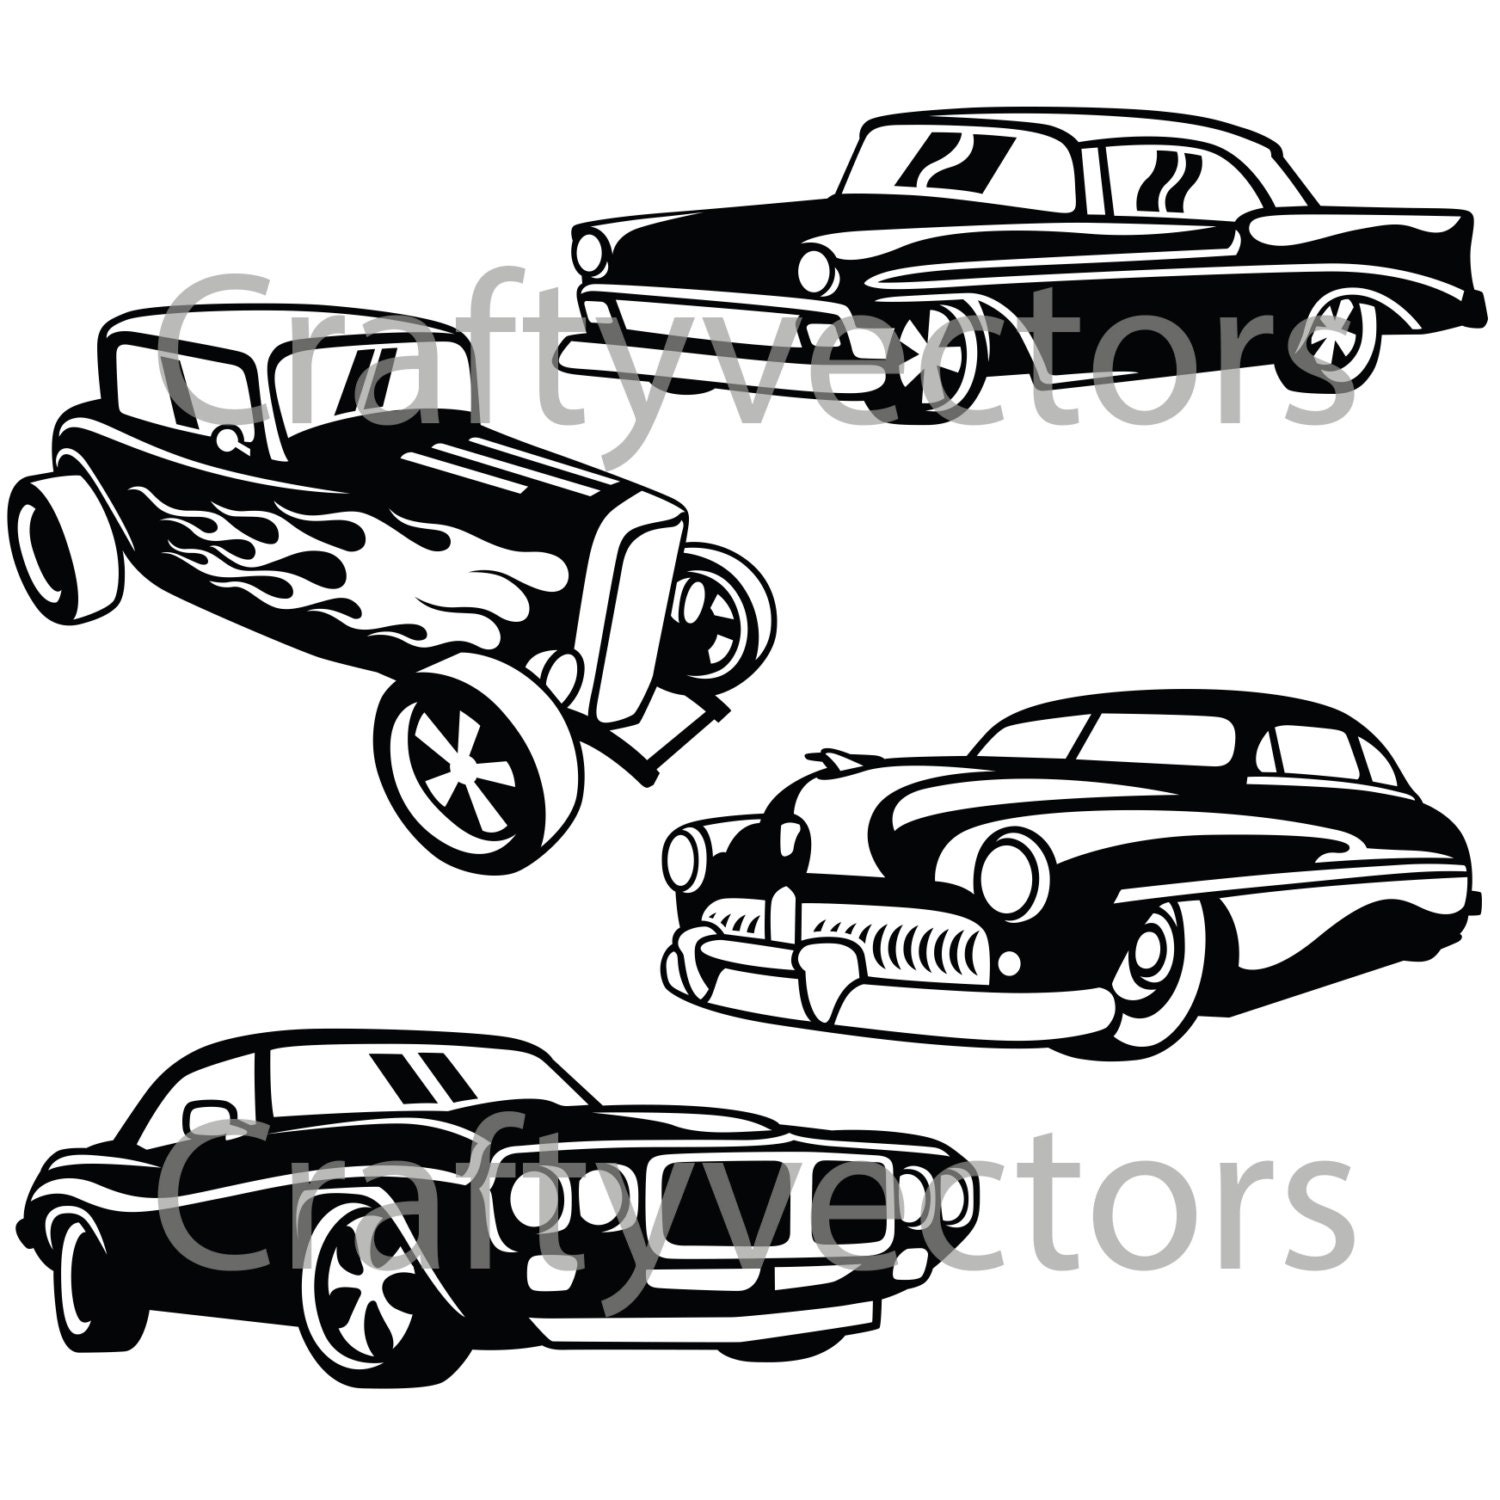 Hot Rod Cars 2 Svg Vector Files From Craftyvectors On Etsy